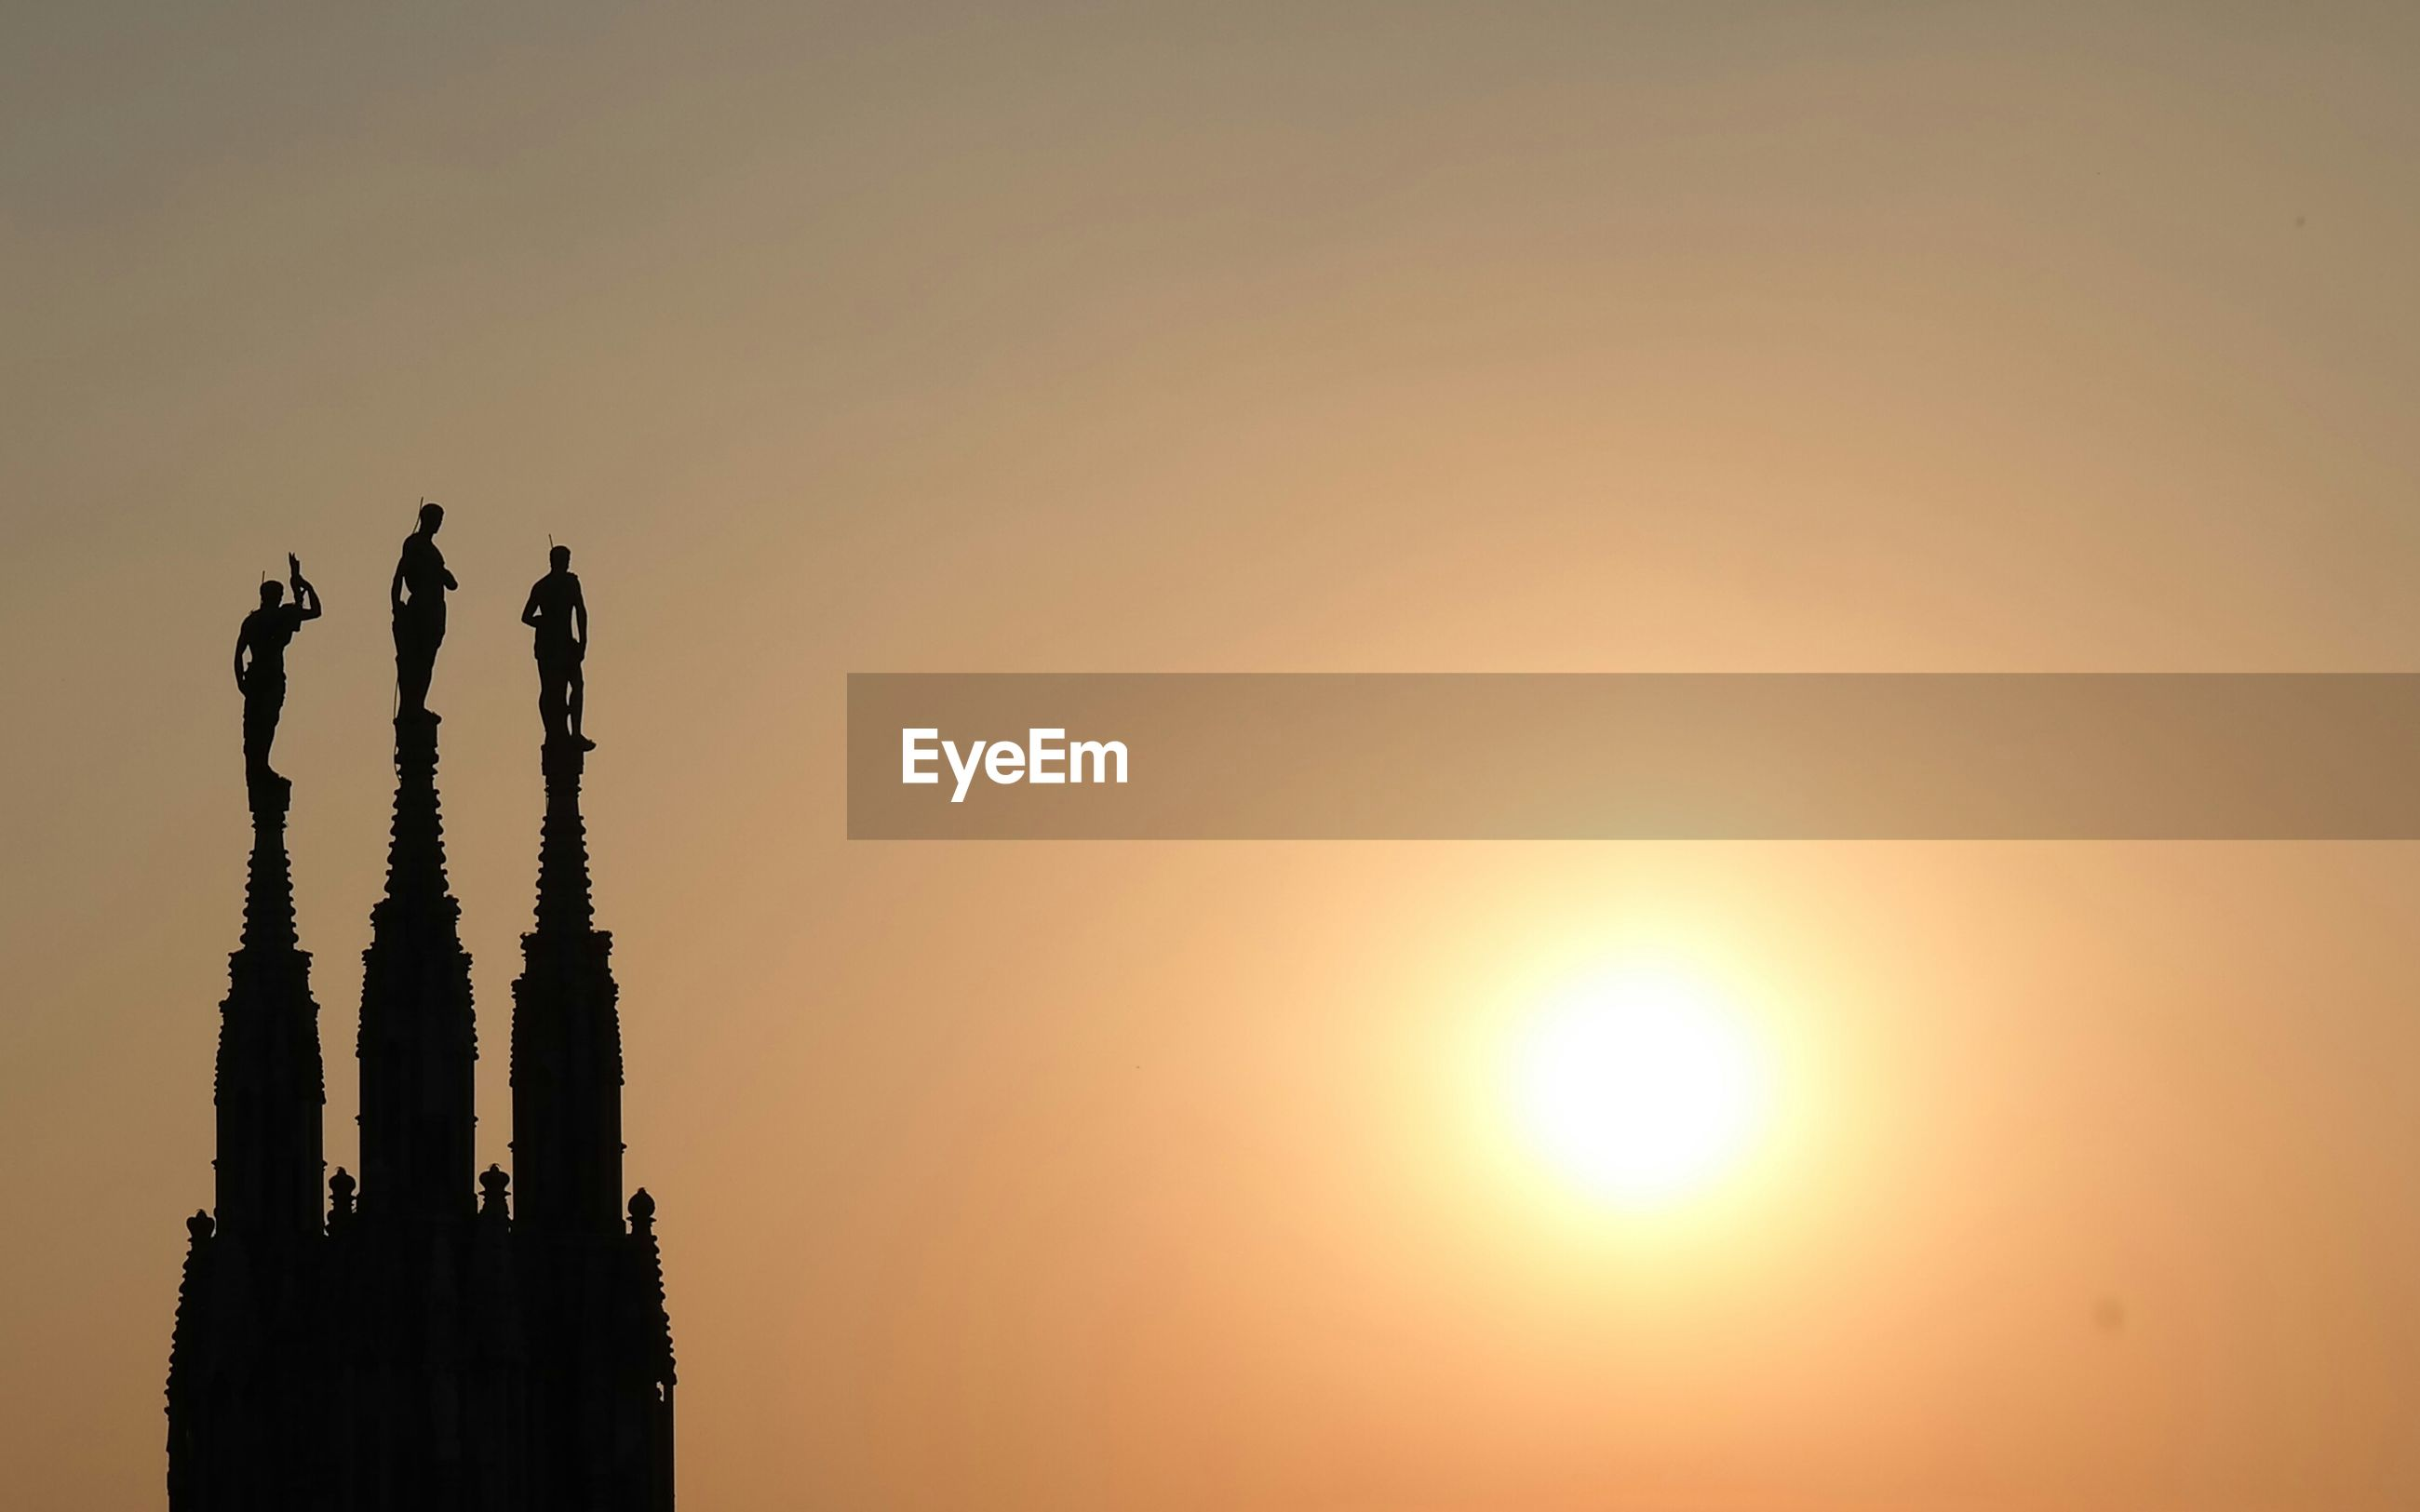 Silhouette spire of milan cathedral against orange sky during sunset